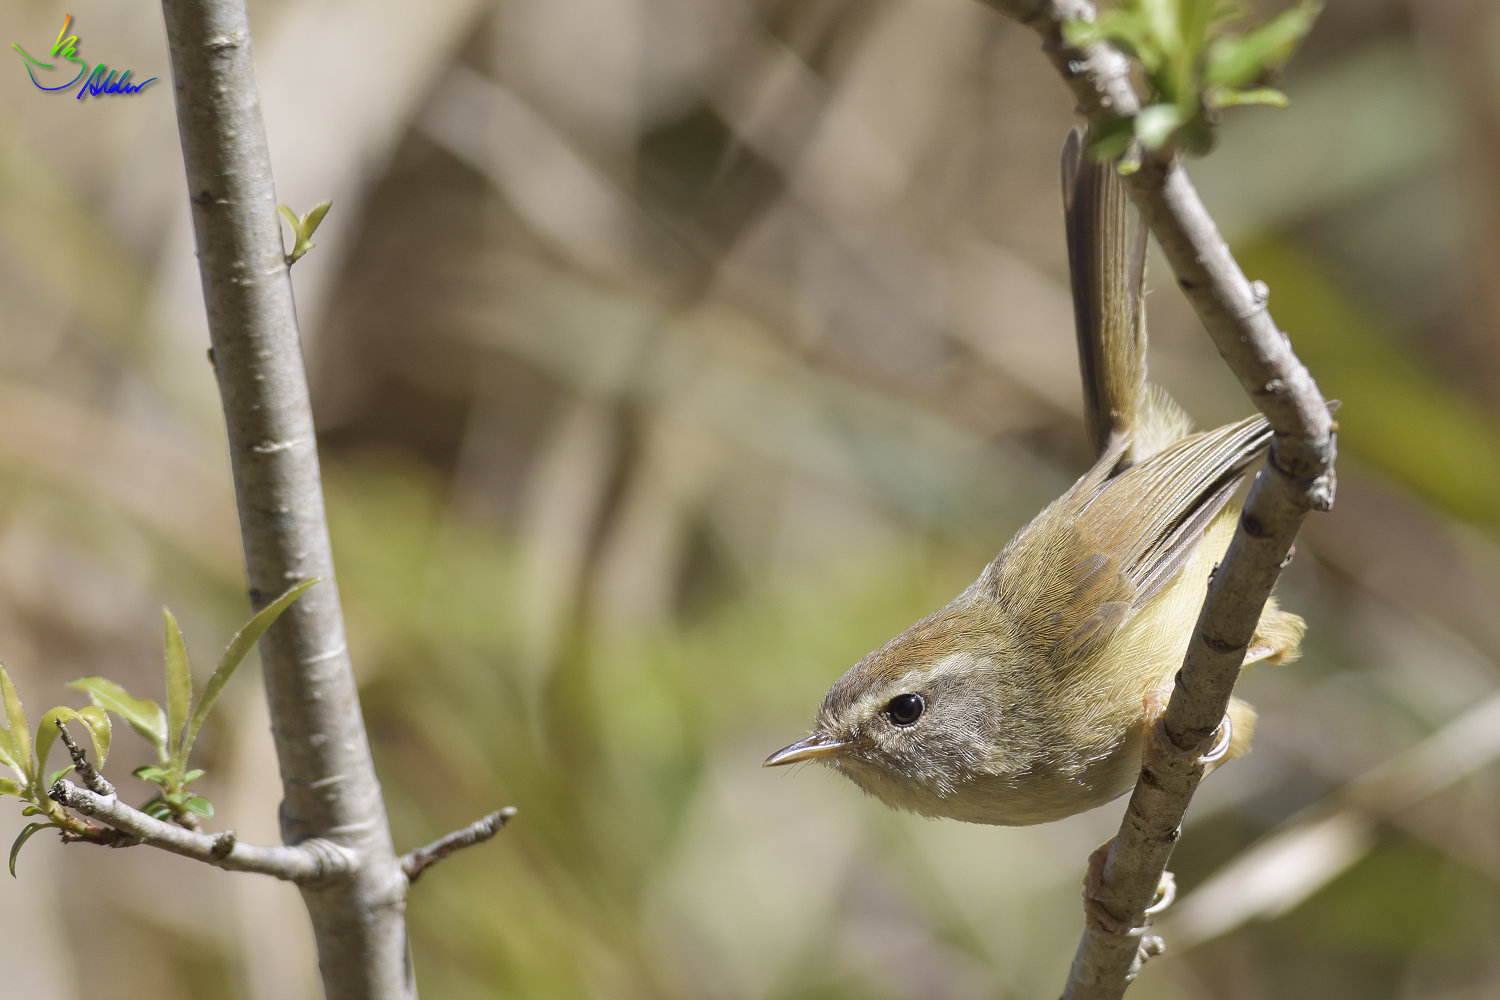 Yellow-bellied_Bush_Warbler_5061